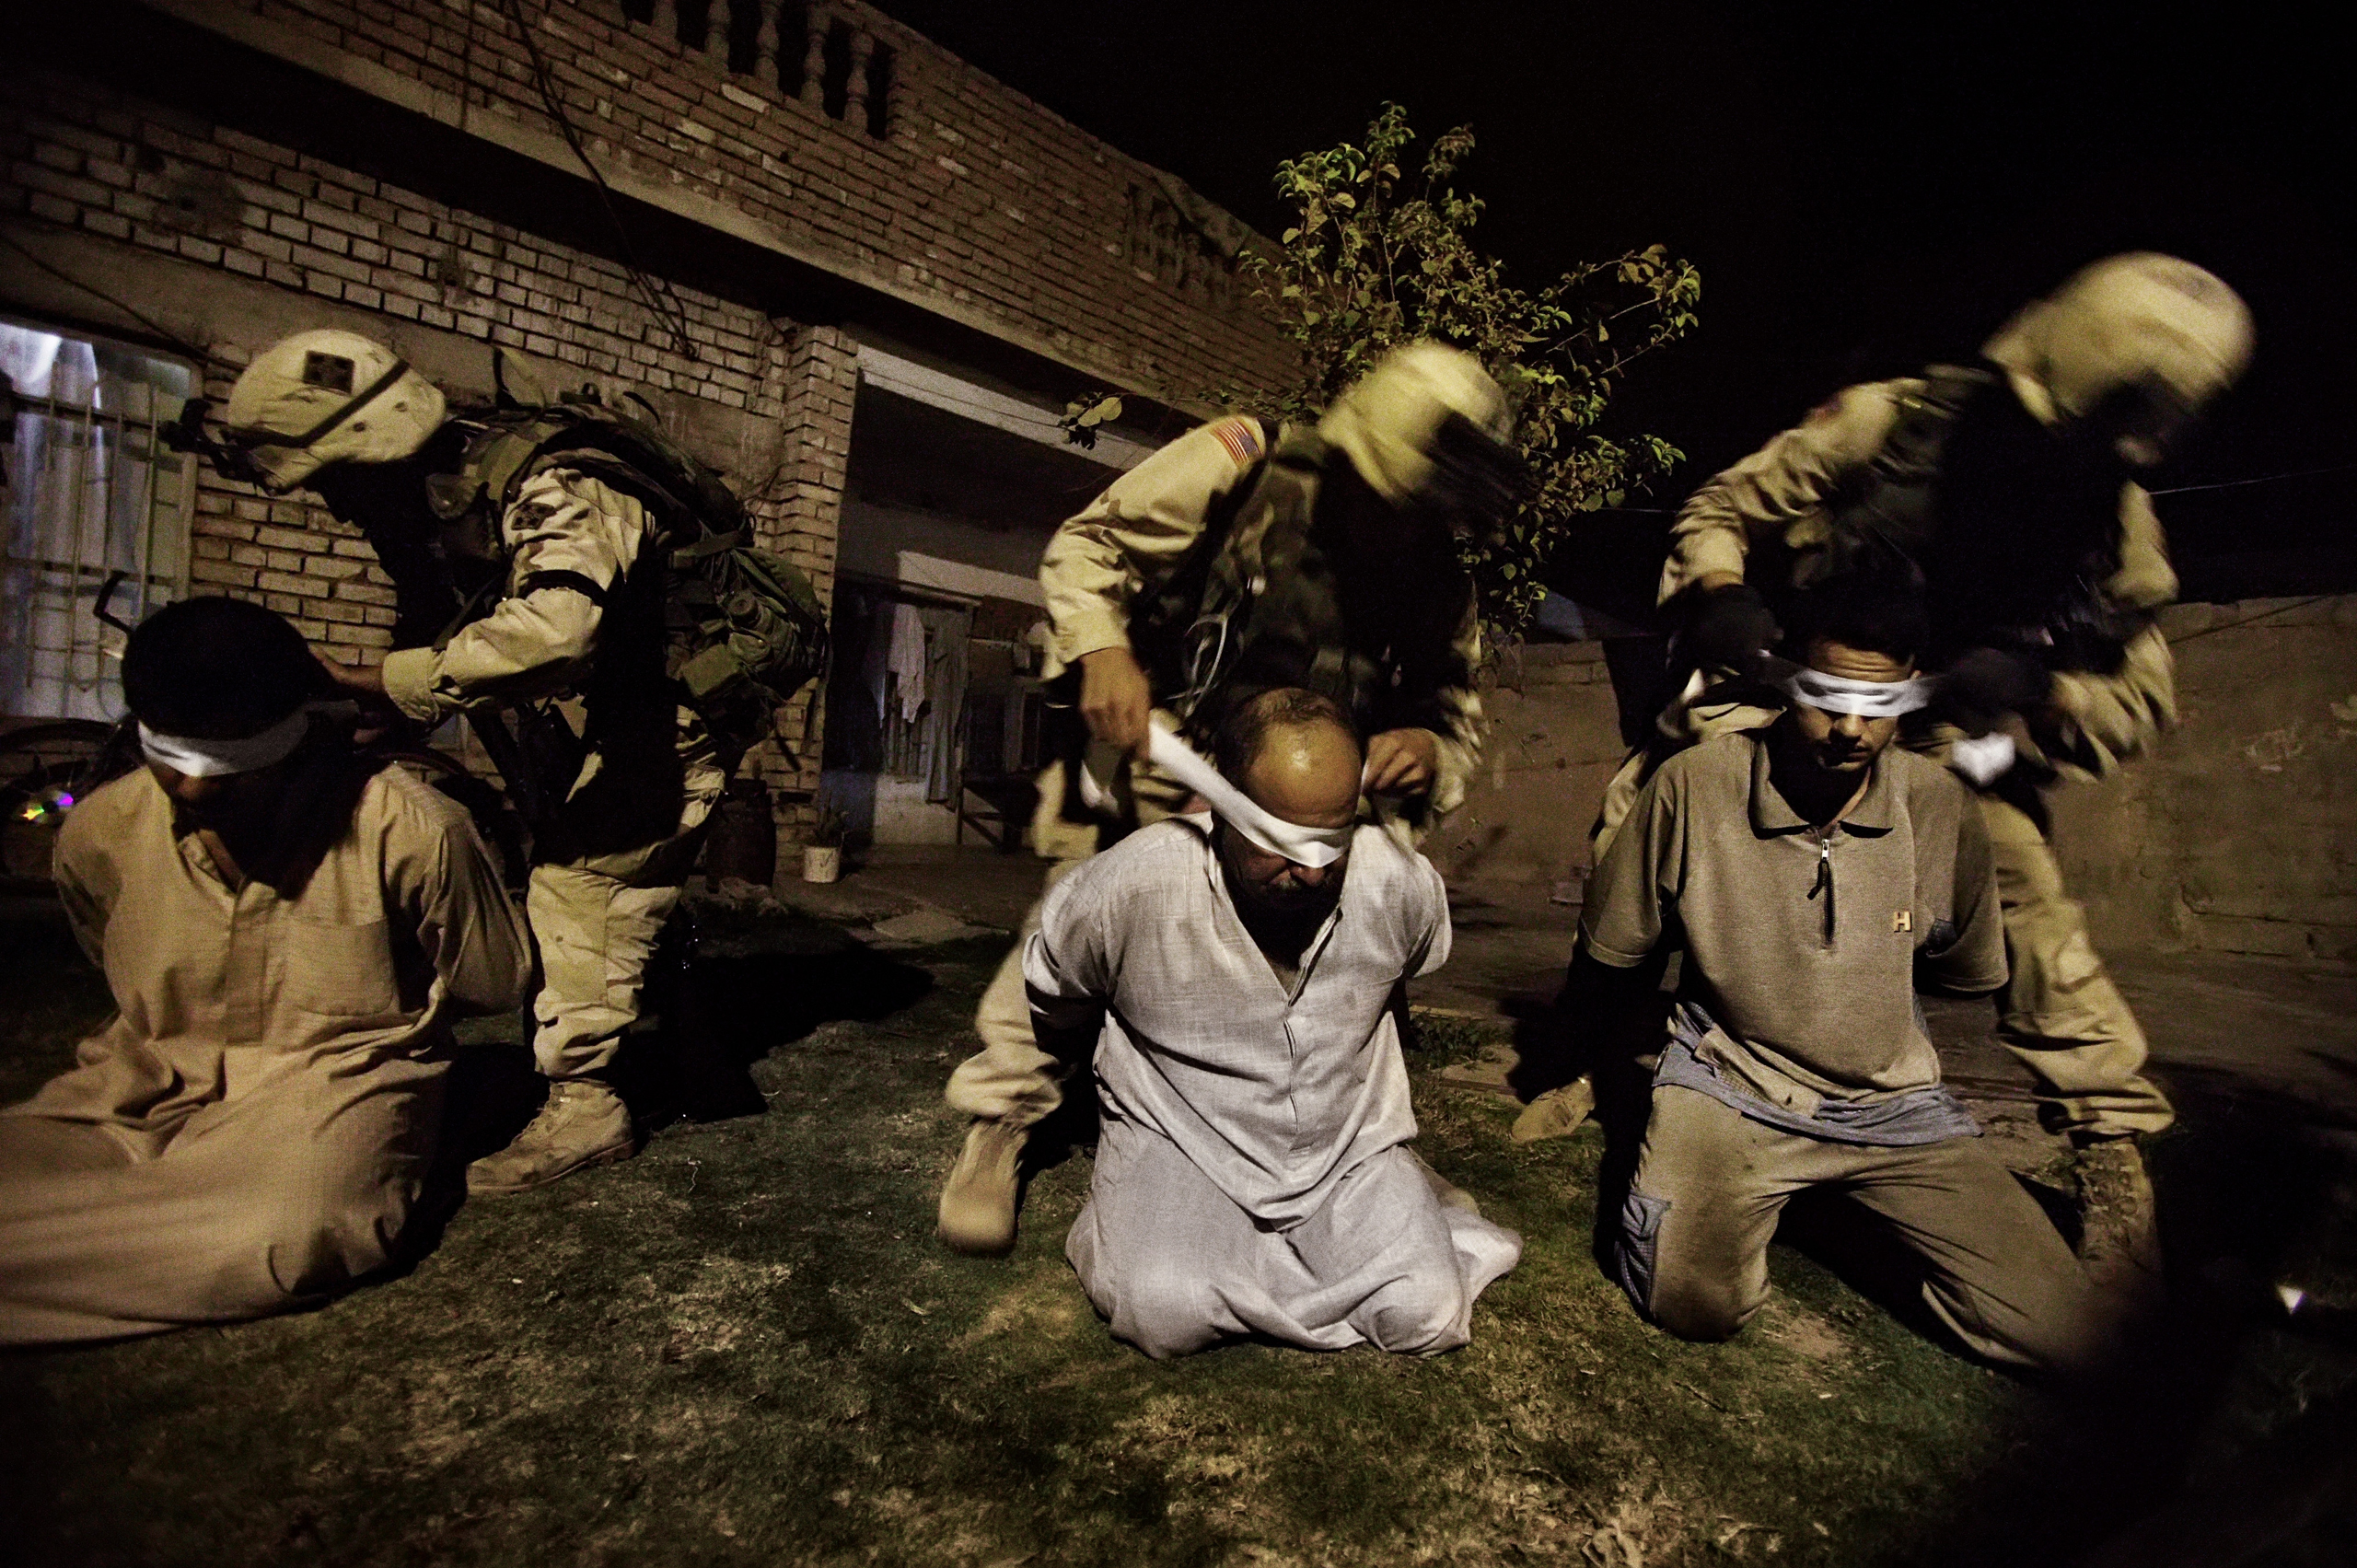 American soldiers of the 1st Battalion of the Fourth Division of the U.S. Army blindfold men suspected of being arms and explosive dealers in Tikrit, the birthplace of  Saddam Hussein and stronghold of his Baathist party, Sept, 24, 2003. Baathists began collaborating with al-Qaeda in Iraq, an insurgency group that was the forerunner of the Islamic State (ISIS), soon after Saddam Hussein was ousted in 2003.